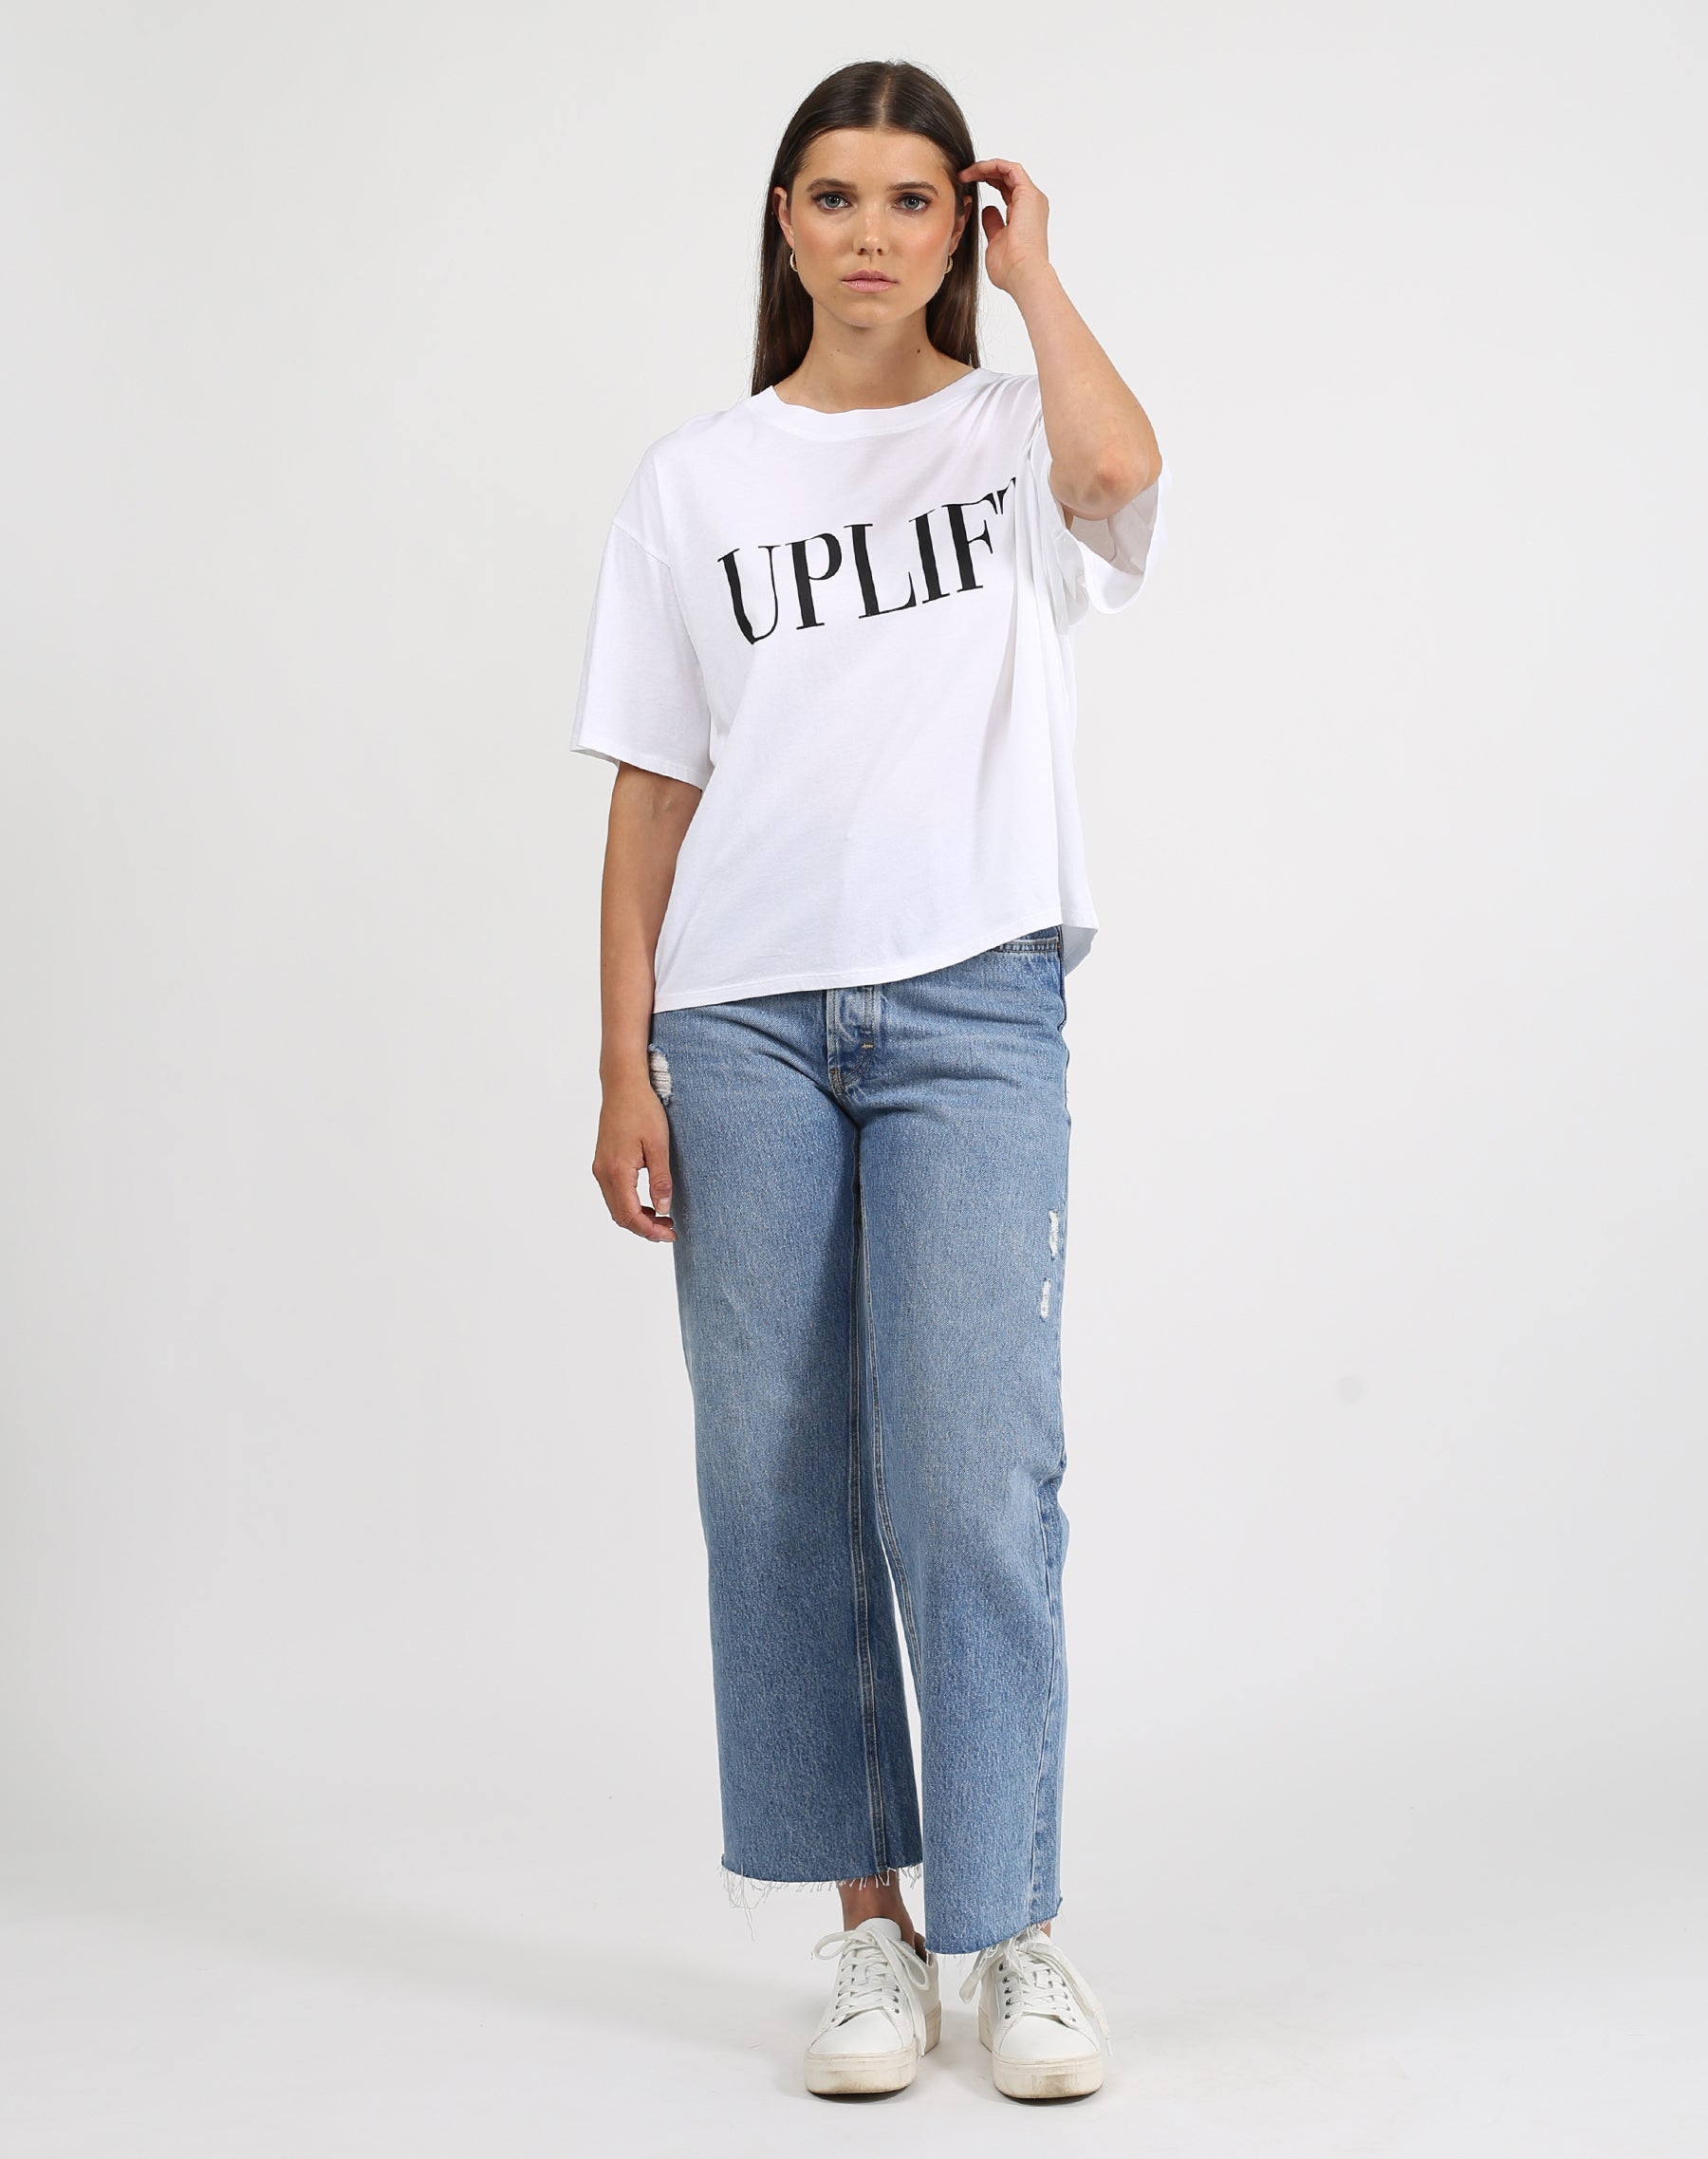 This is a photo of a model wearing the uplift boxy tee crew neck in white by brunette the label.